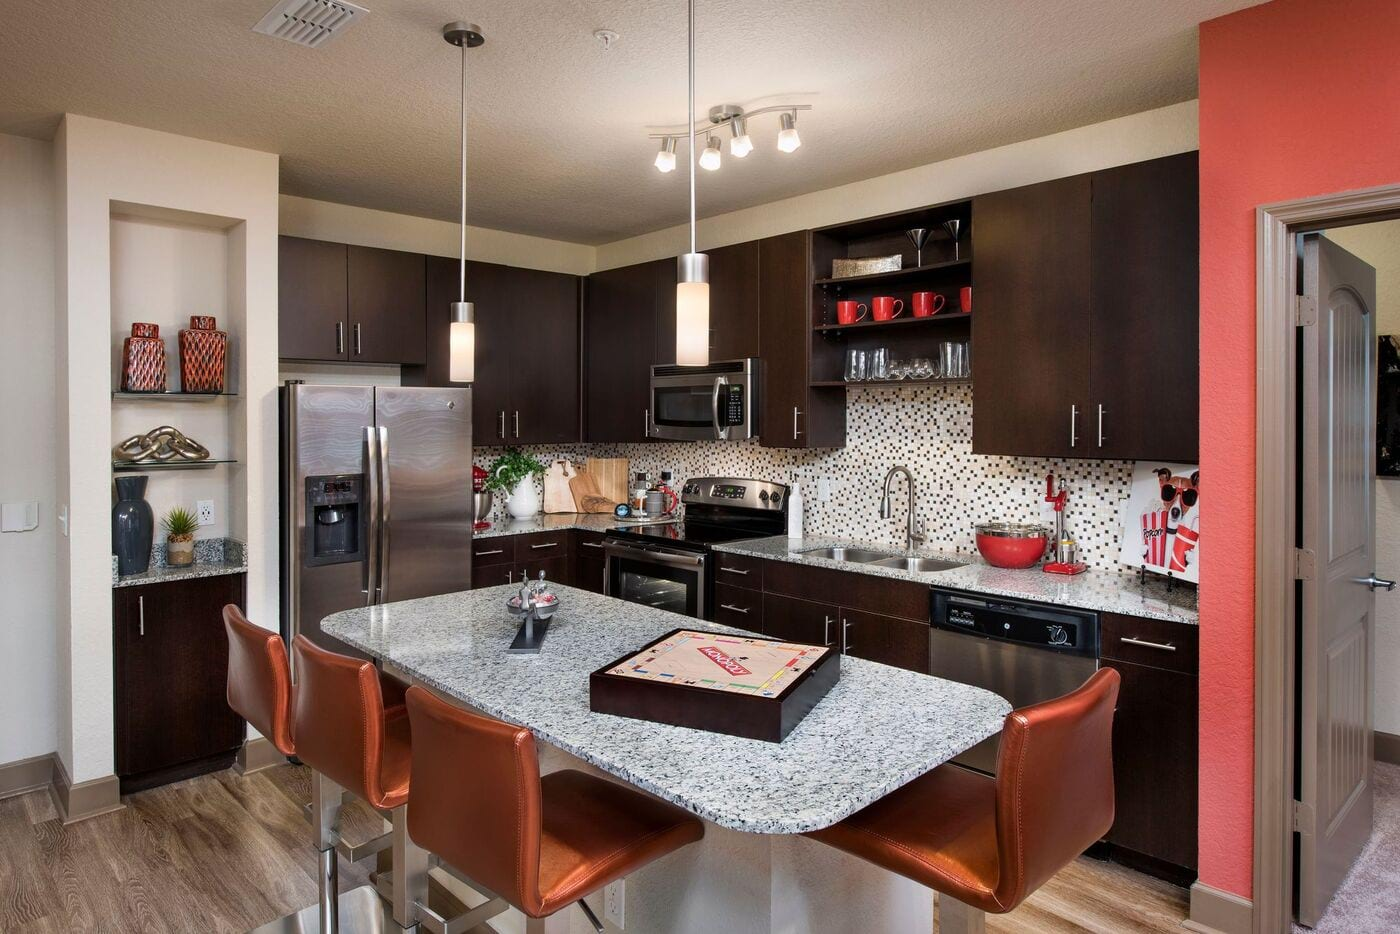 The Courtney at Universal Boulevard - Model kitchen with all stainless front appliances, large counter tops, island, and ebony cabinets.